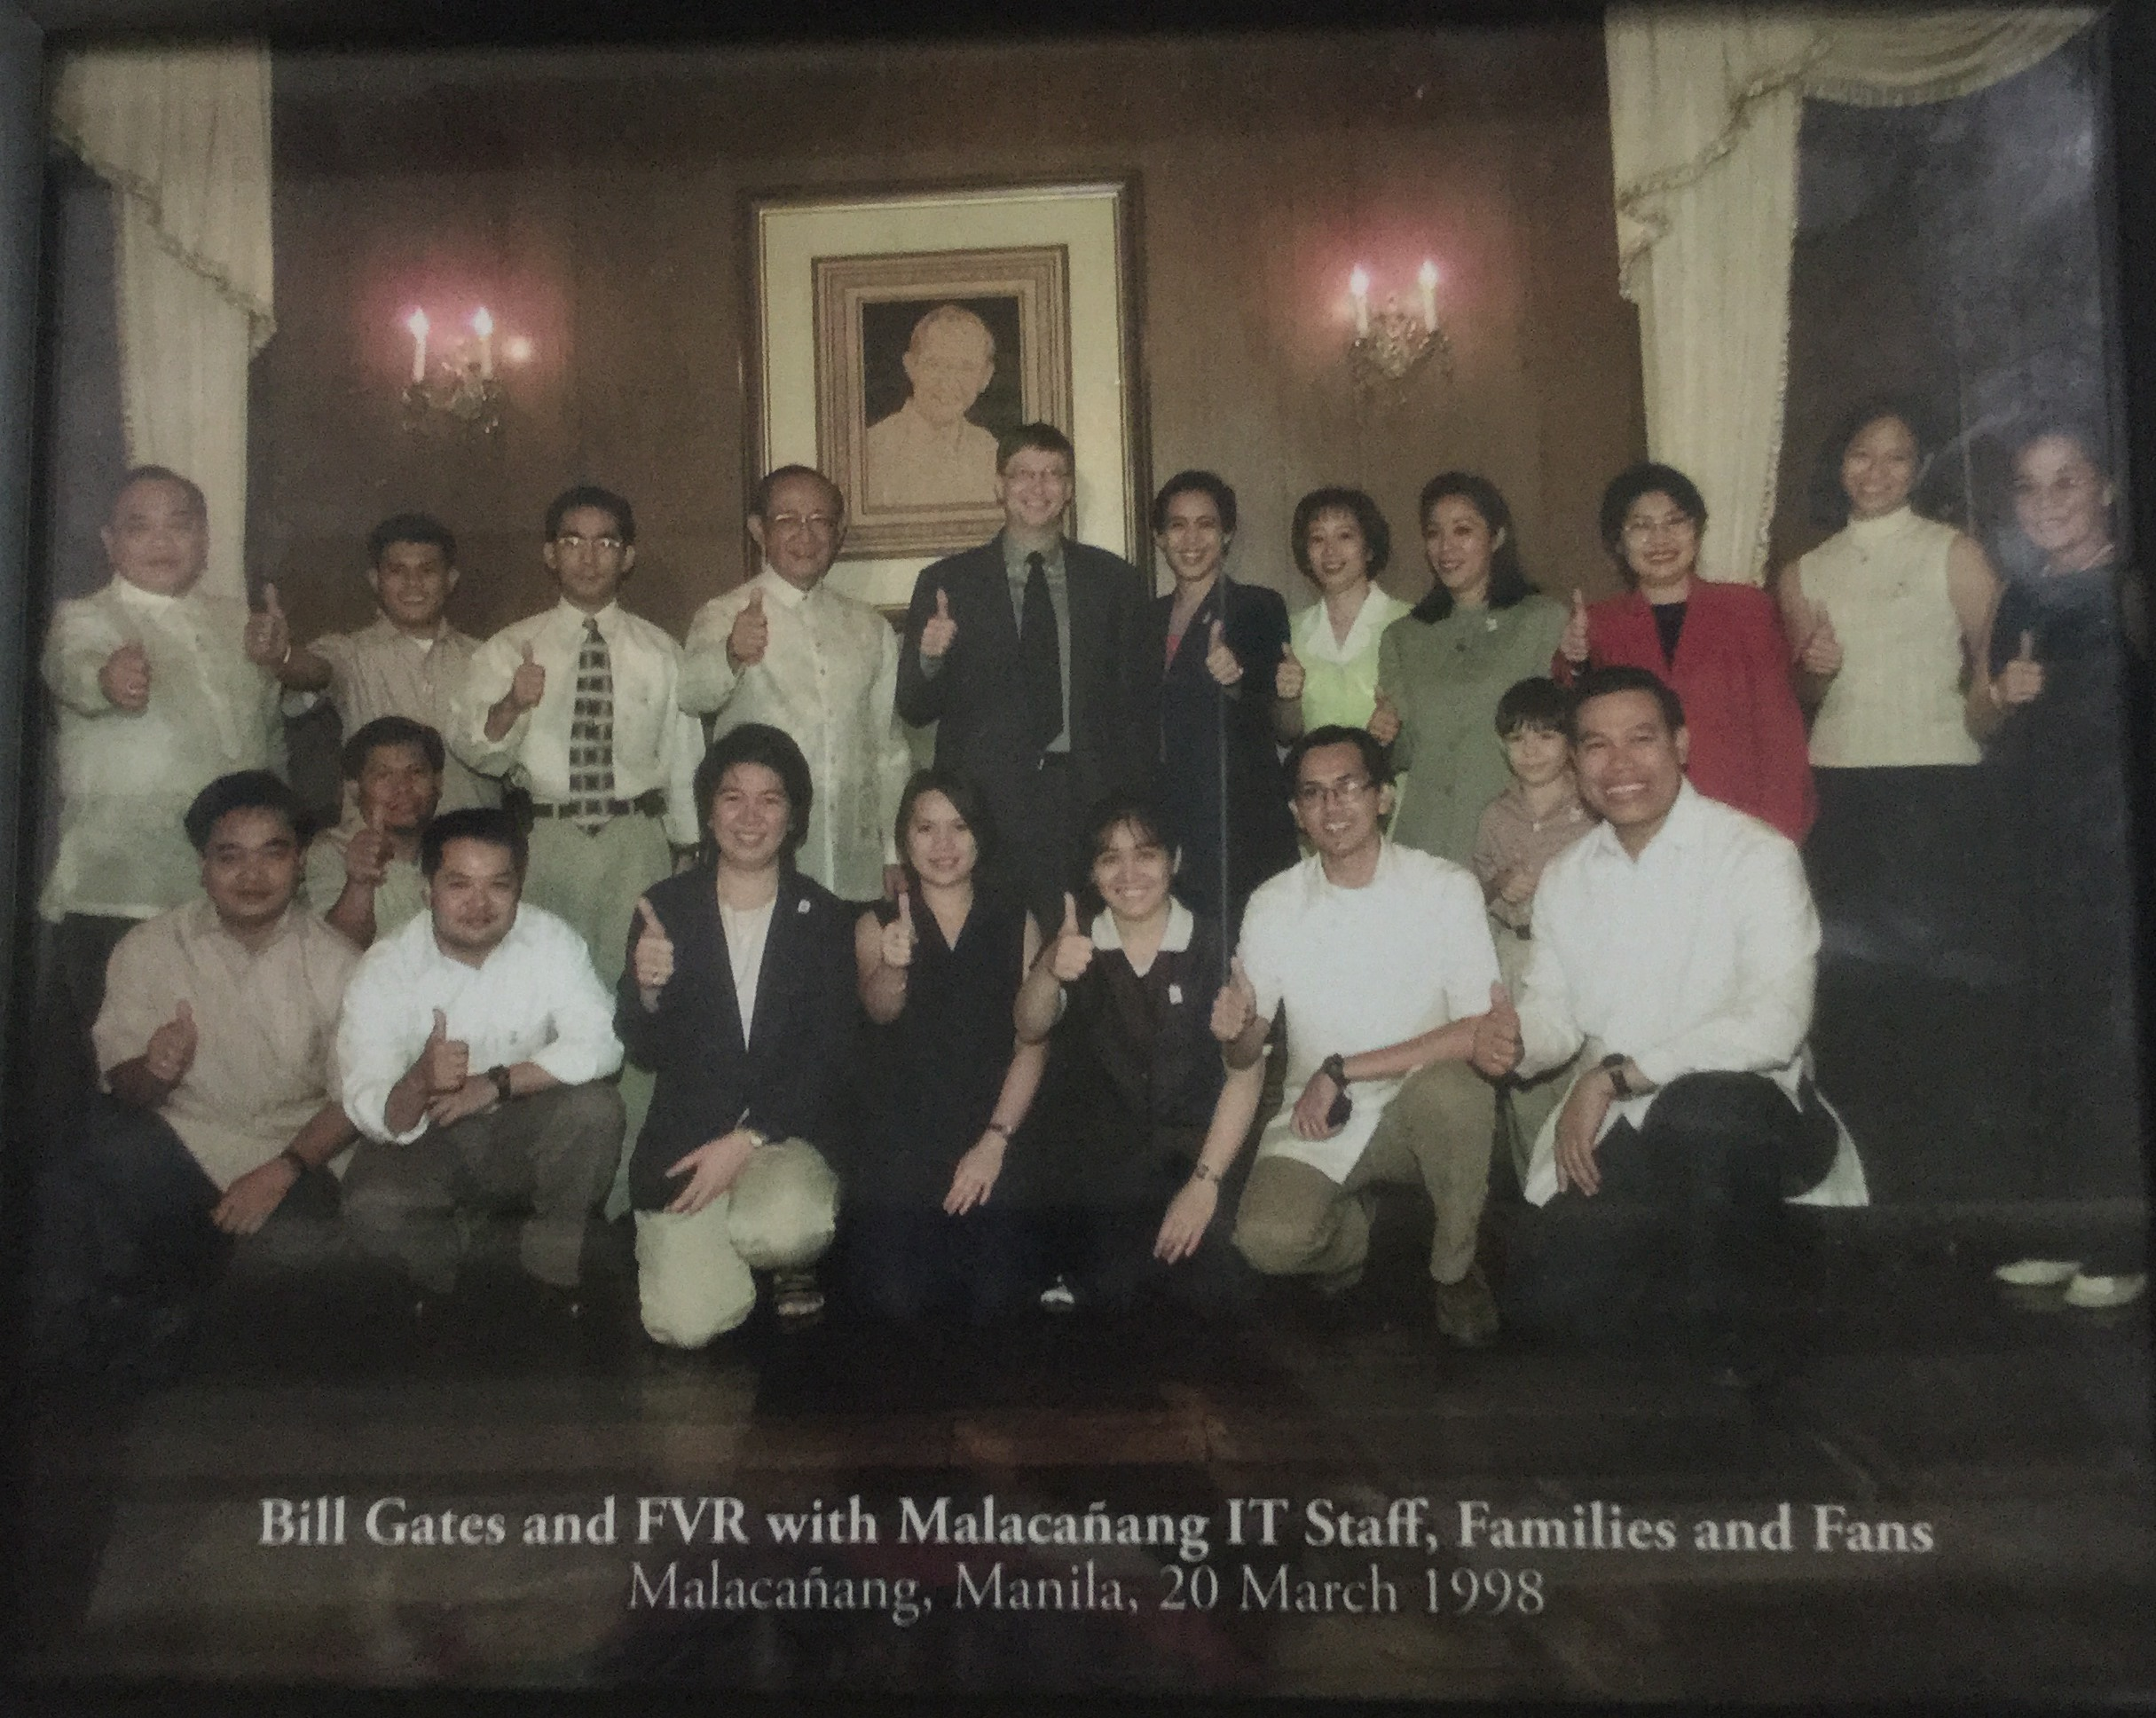 Bill Gates and FVR with IT Staff, Families and Fans